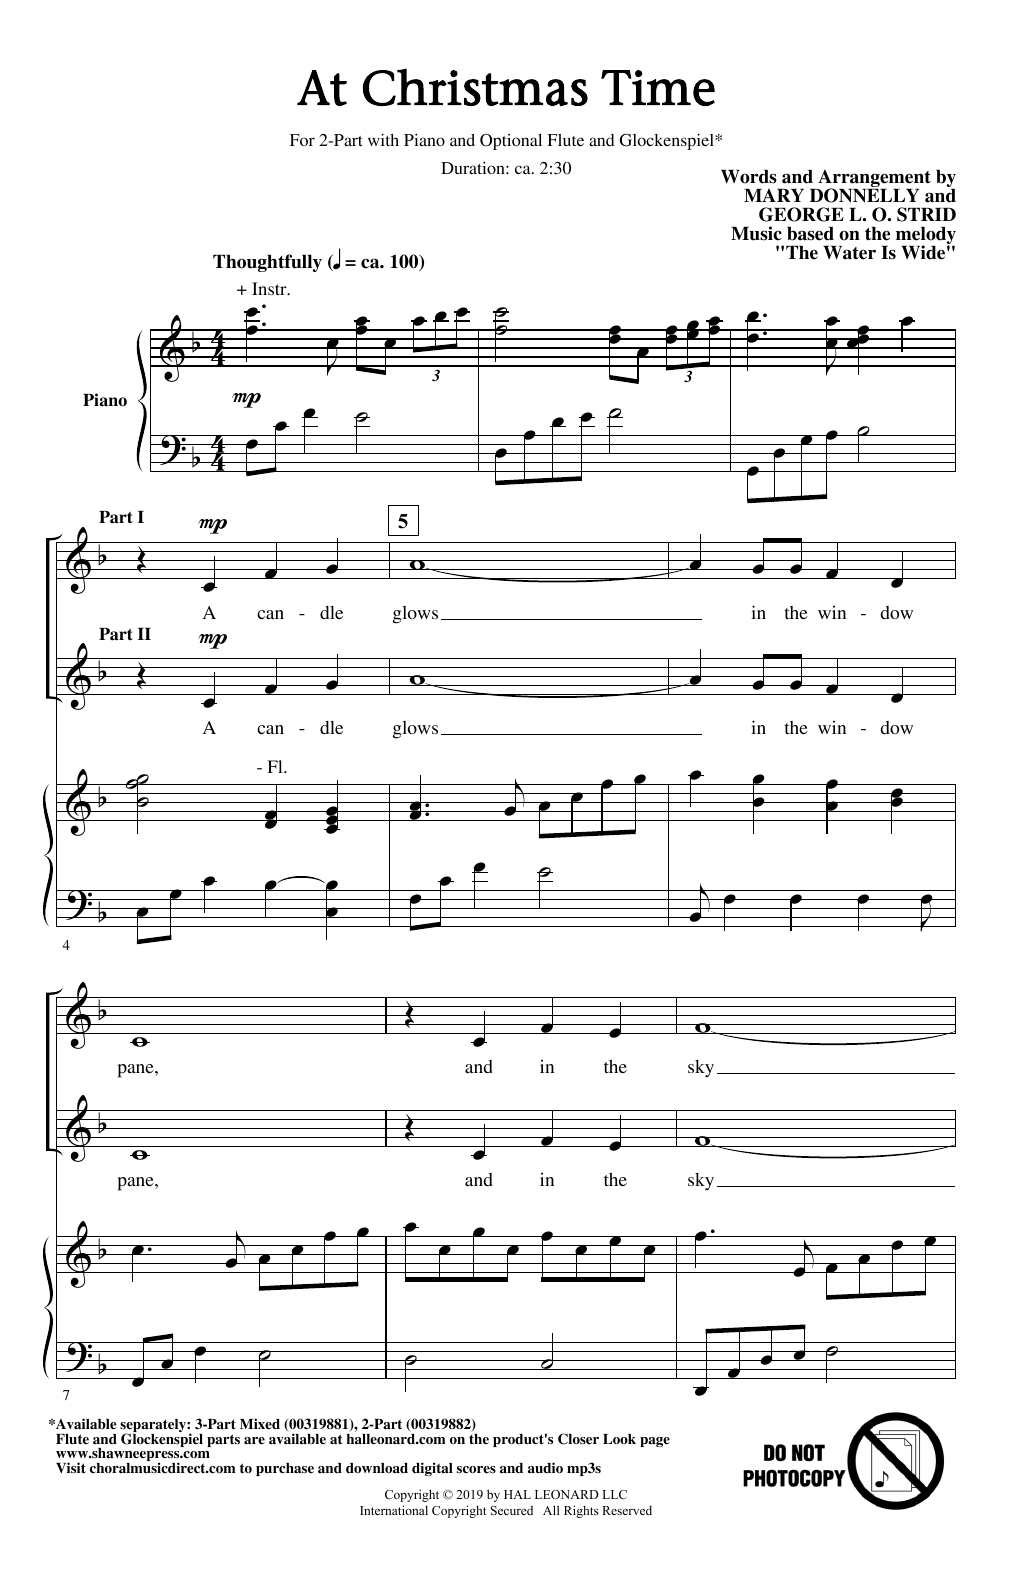 Mary Donnelly and George L.O. Strid At Christmas Time sheet music notes and chords. Download Printable PDF.